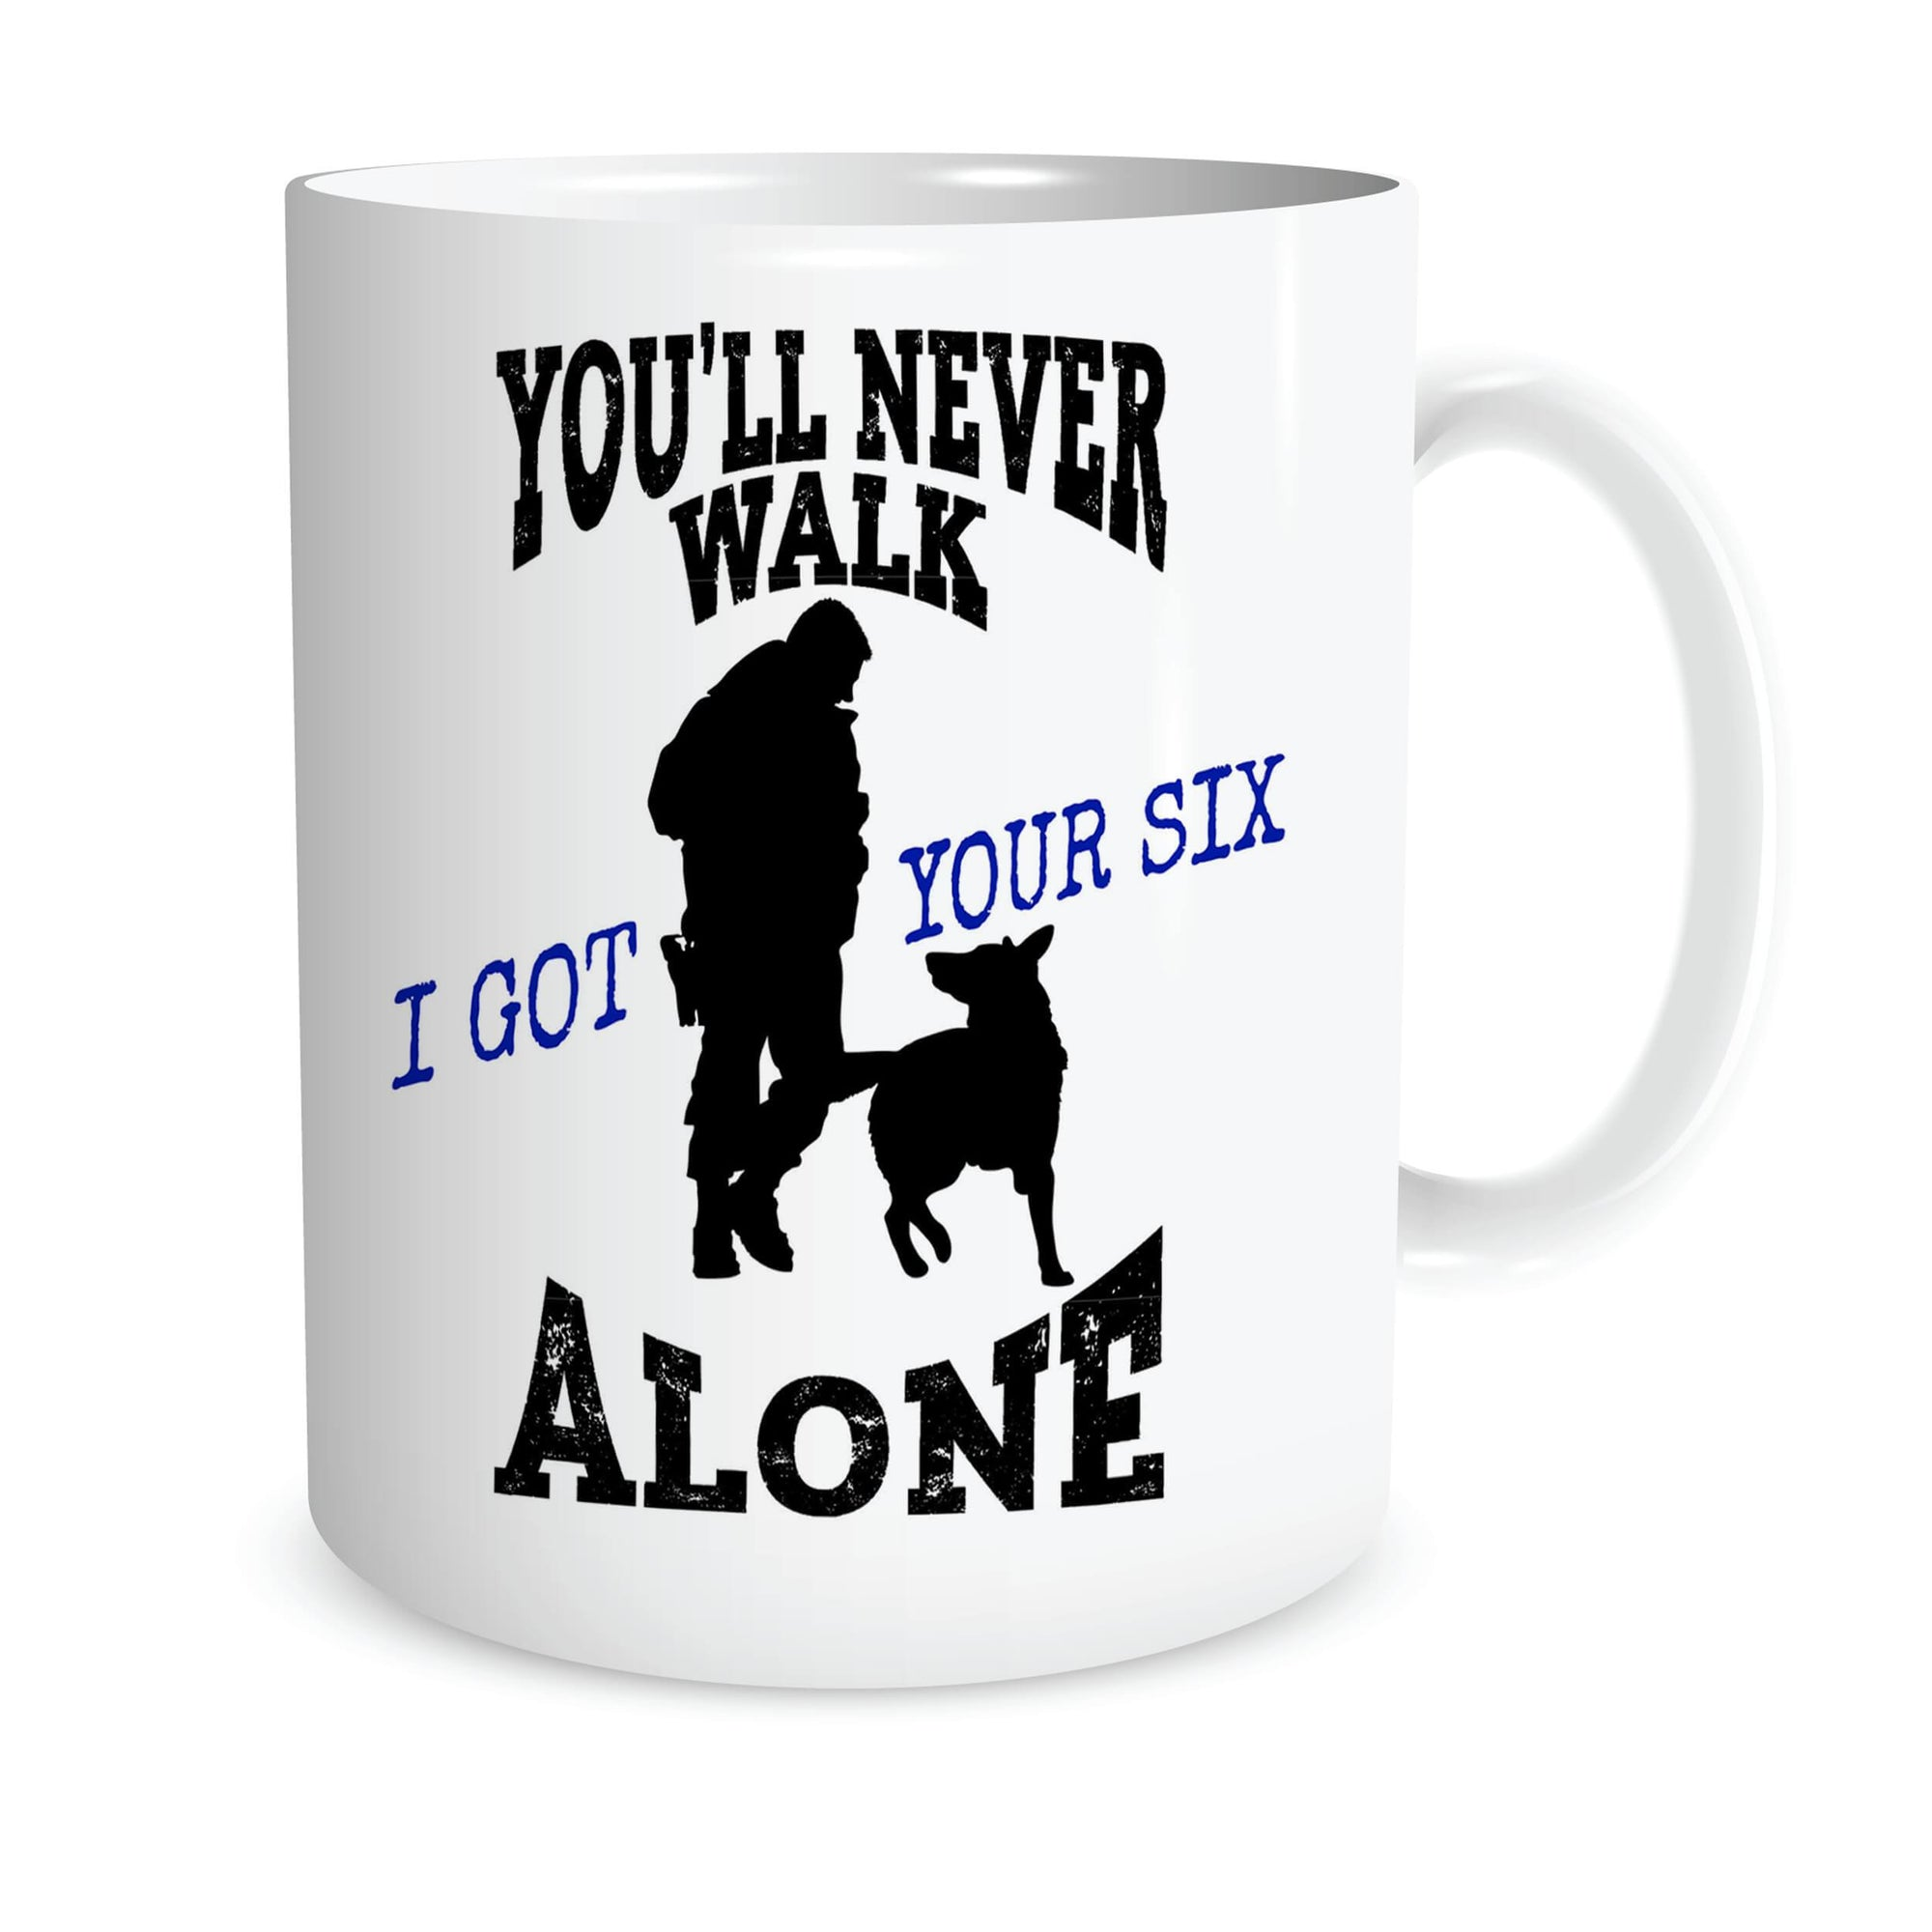 YOU'LL NEVER WALK ALONE K9 COFFEE MUG